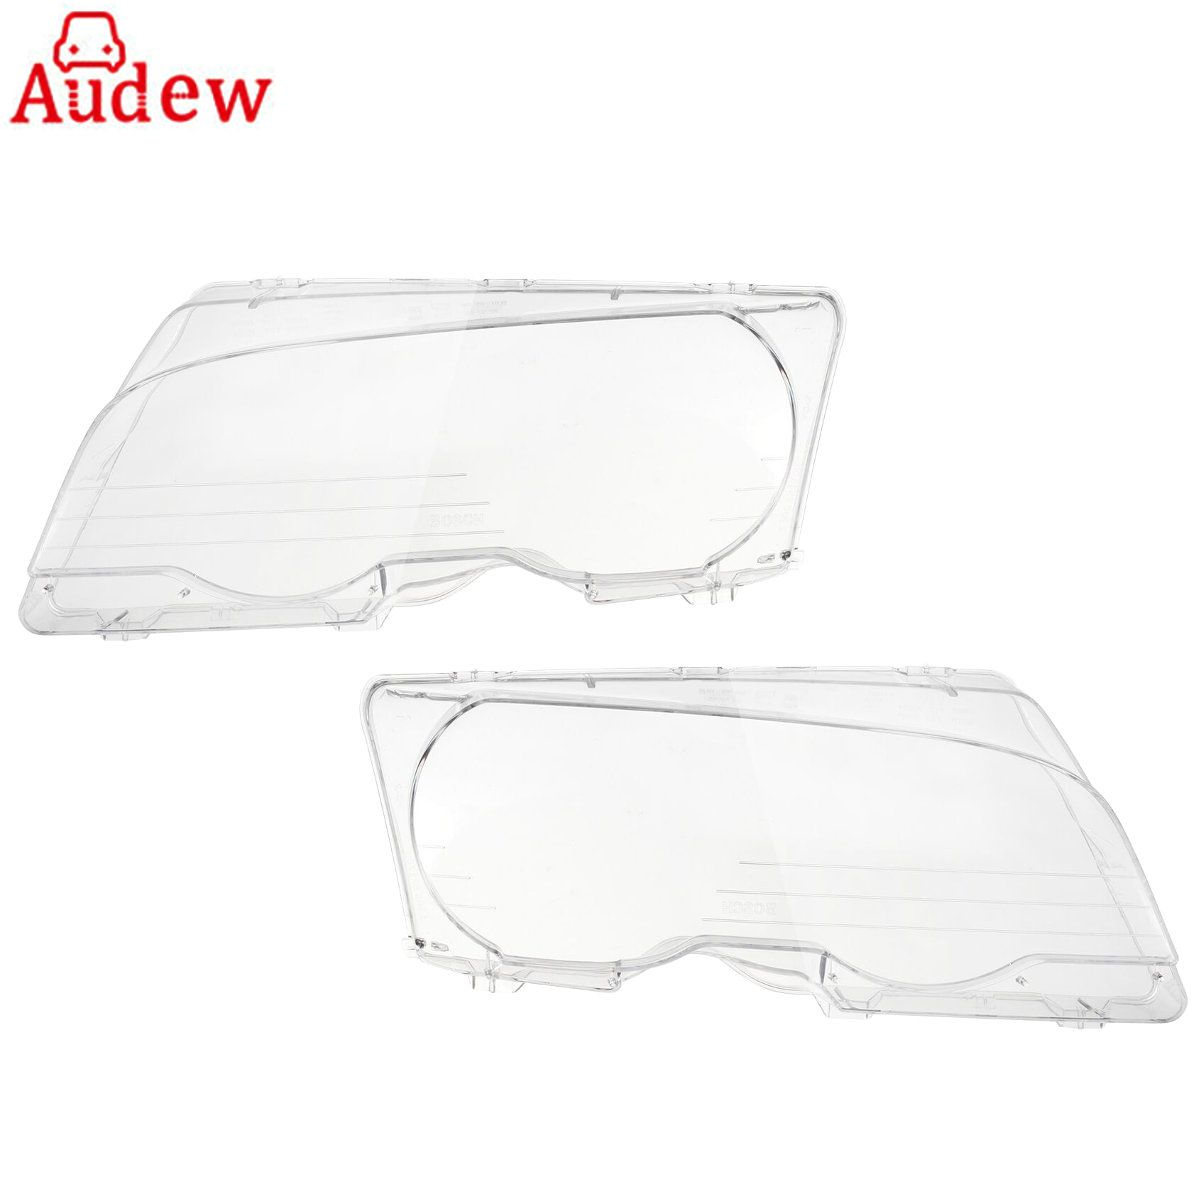 1 Pair Left & Right Headlight Headlamp Clear Lenses Lens Clear Cover Coupe Convertible For BMW E46 2DR 1999-2003 M3 2001-2006